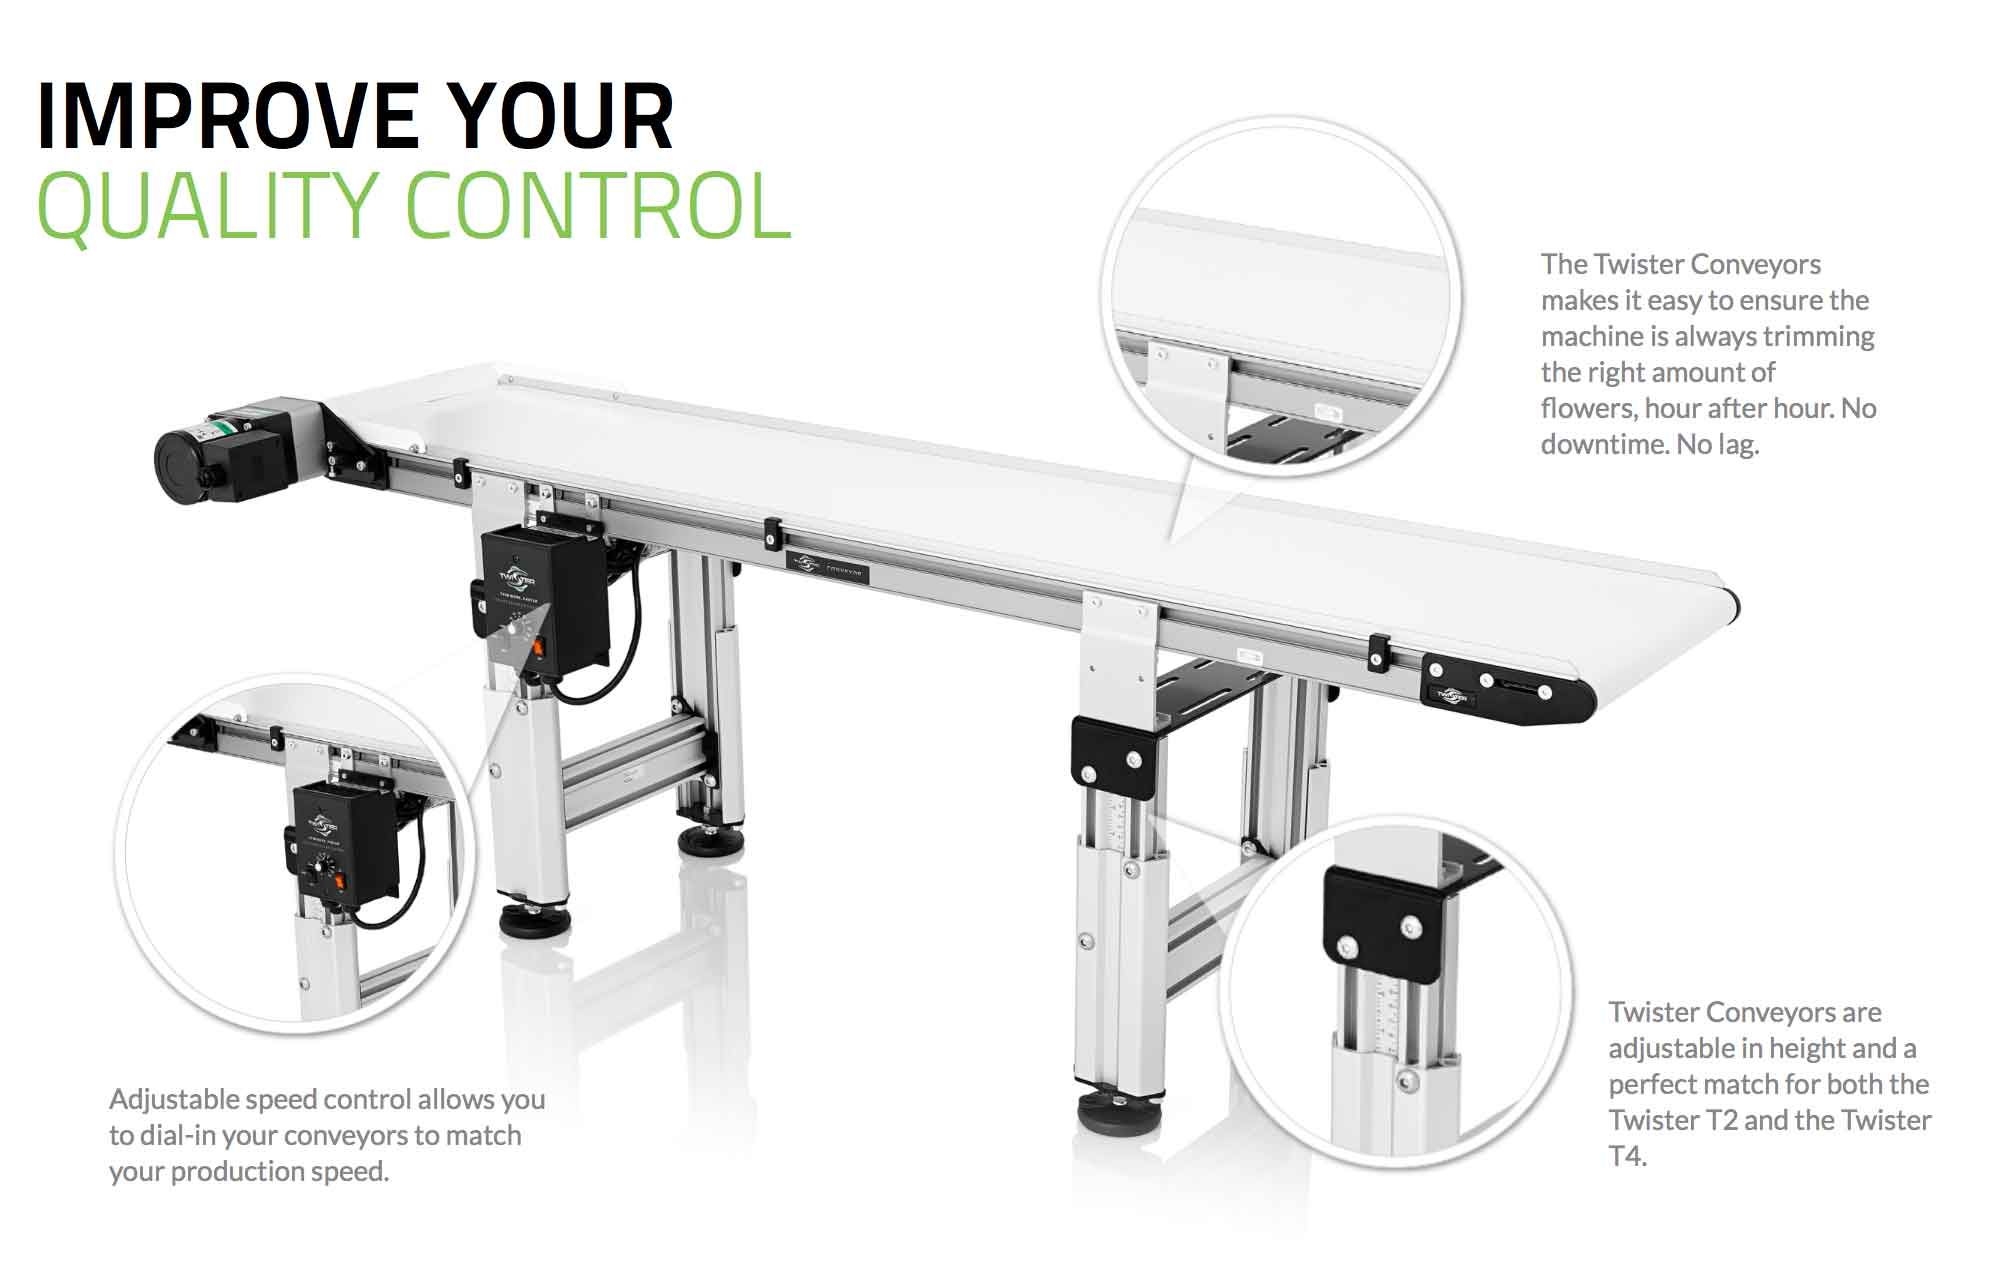 Improve quality control with Twister Conveyors